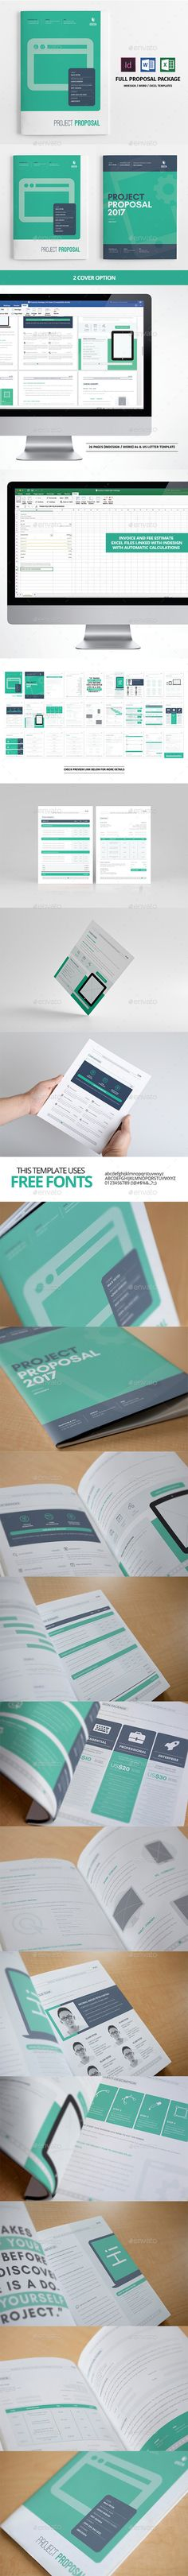 free proposal template%0A Project Proposal Template   Proposal templates  Project proposal and  Proposals